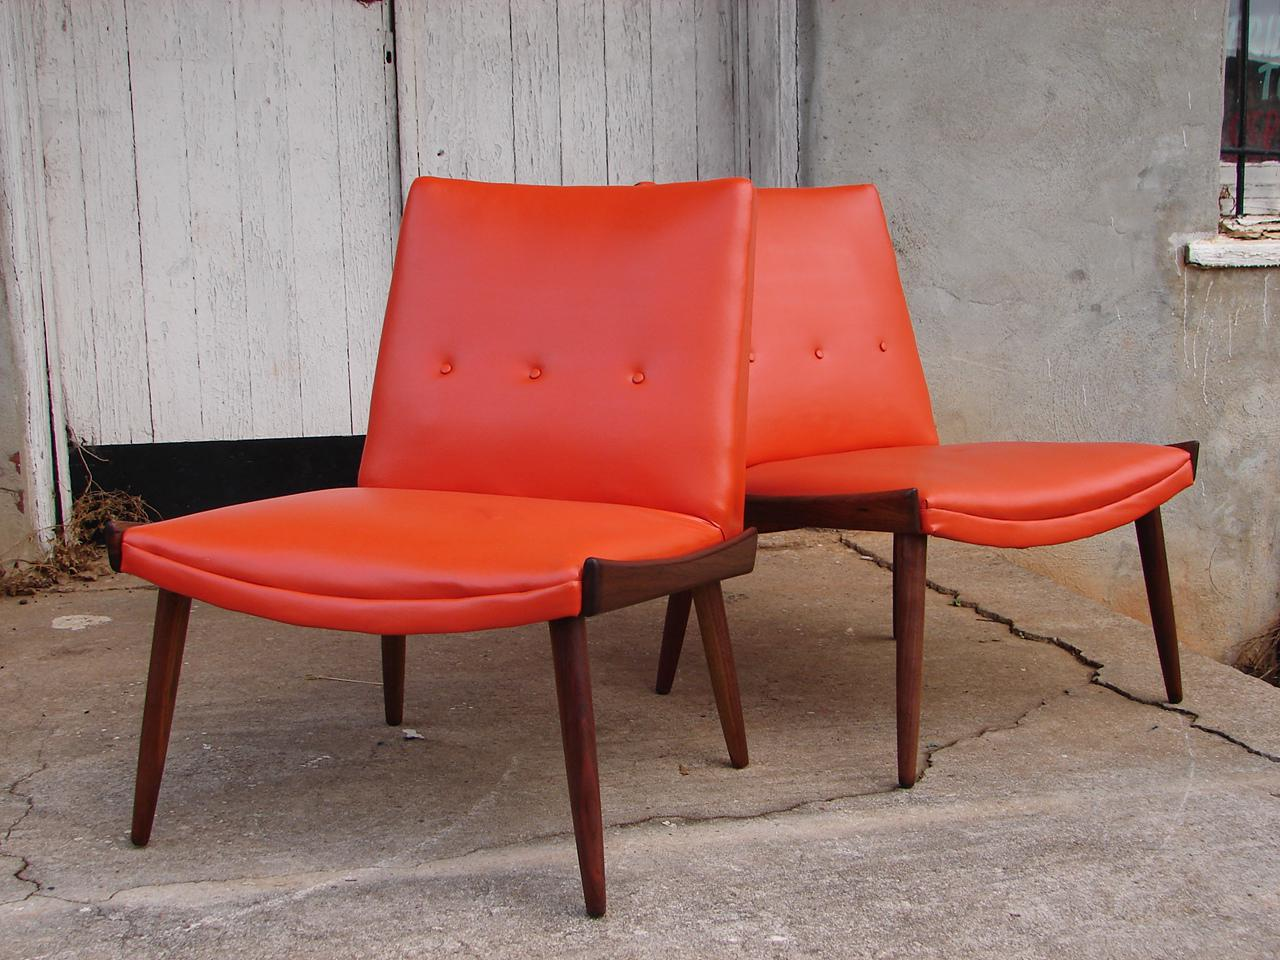 Awesome 1950s Vintage Kroehler Danish Mid Century Modern Lounge Slipper Chairs    Pair   Image 4 Of